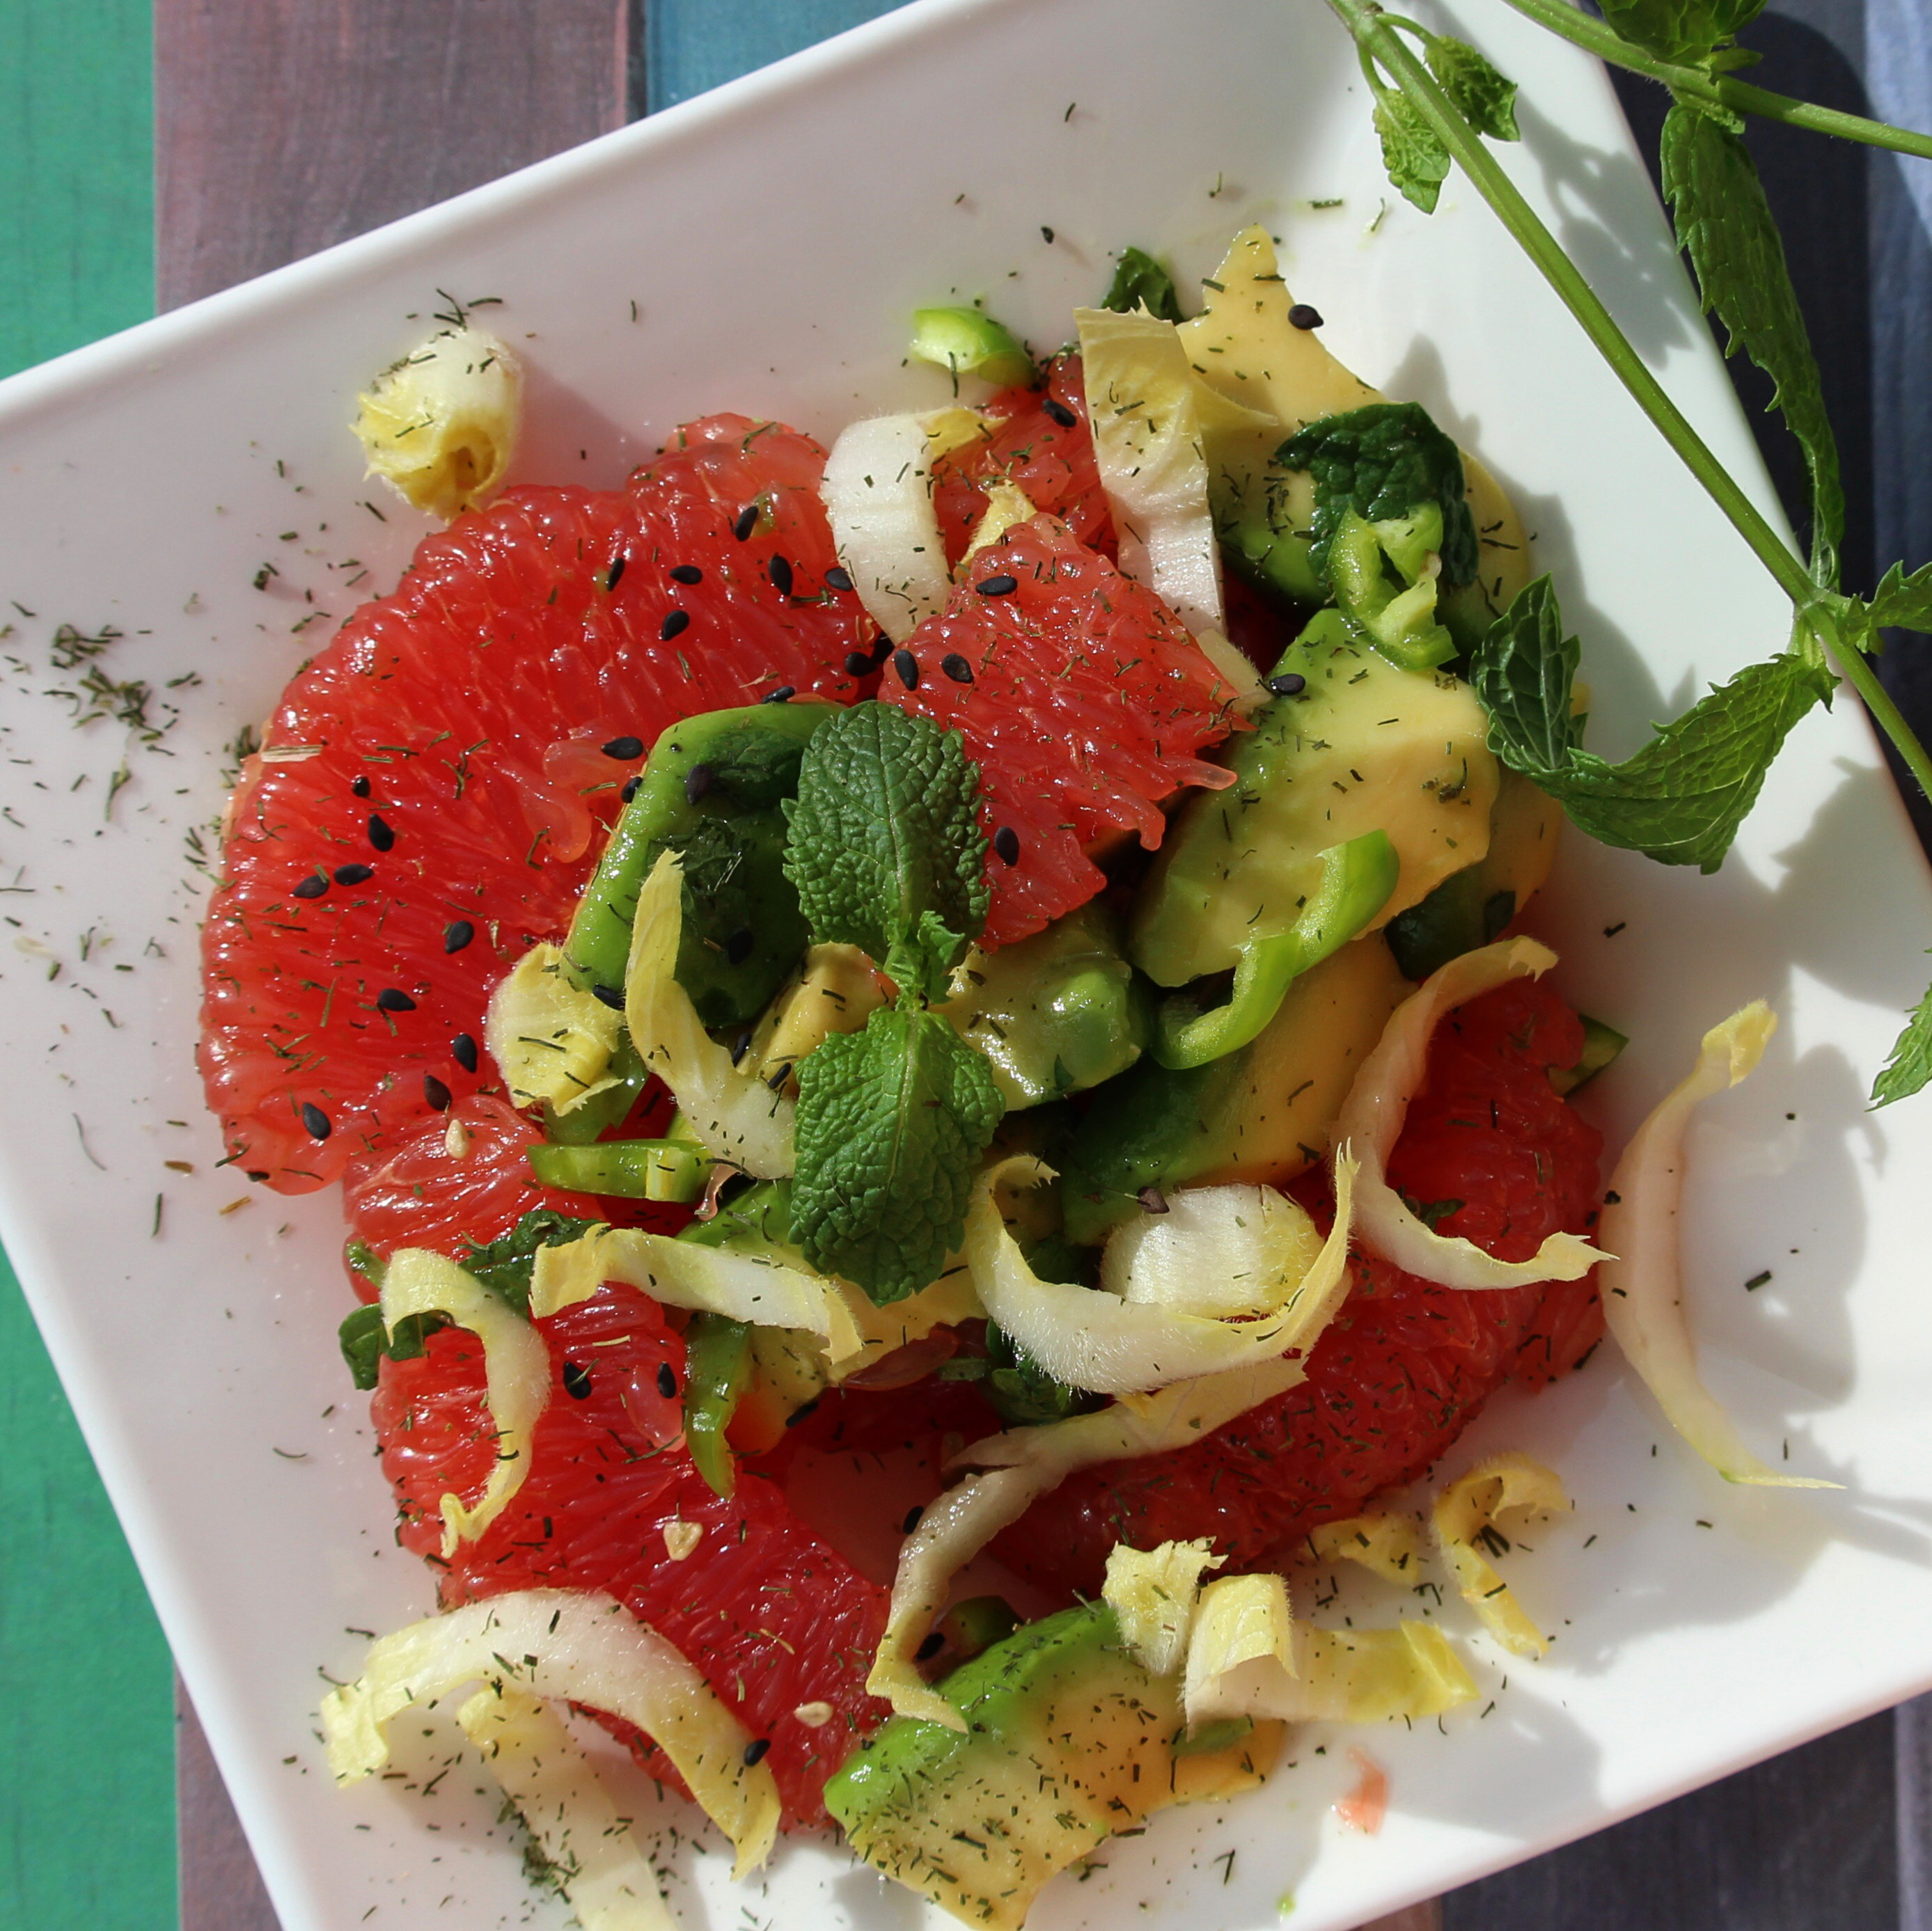 Avocado and Grapefruit Salad with Mint-Dill Vinaigrette